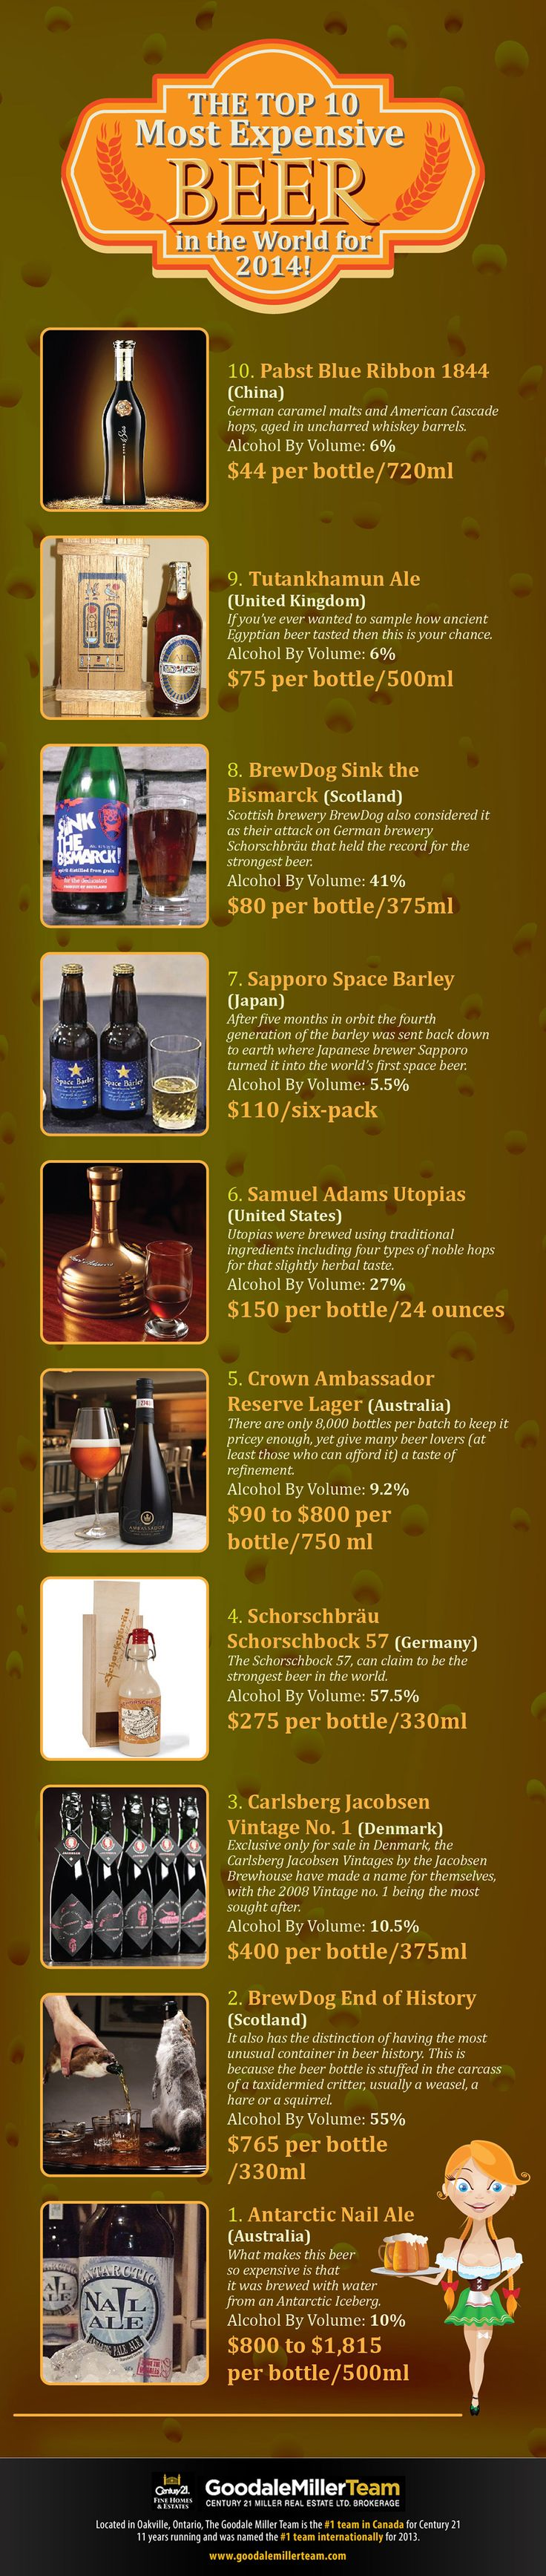 10 Most Expensive Craft Beers in 2014 >> https://www.finedininglovers.com/blog/food-drinks/food-infographic-most-expensive-beer/